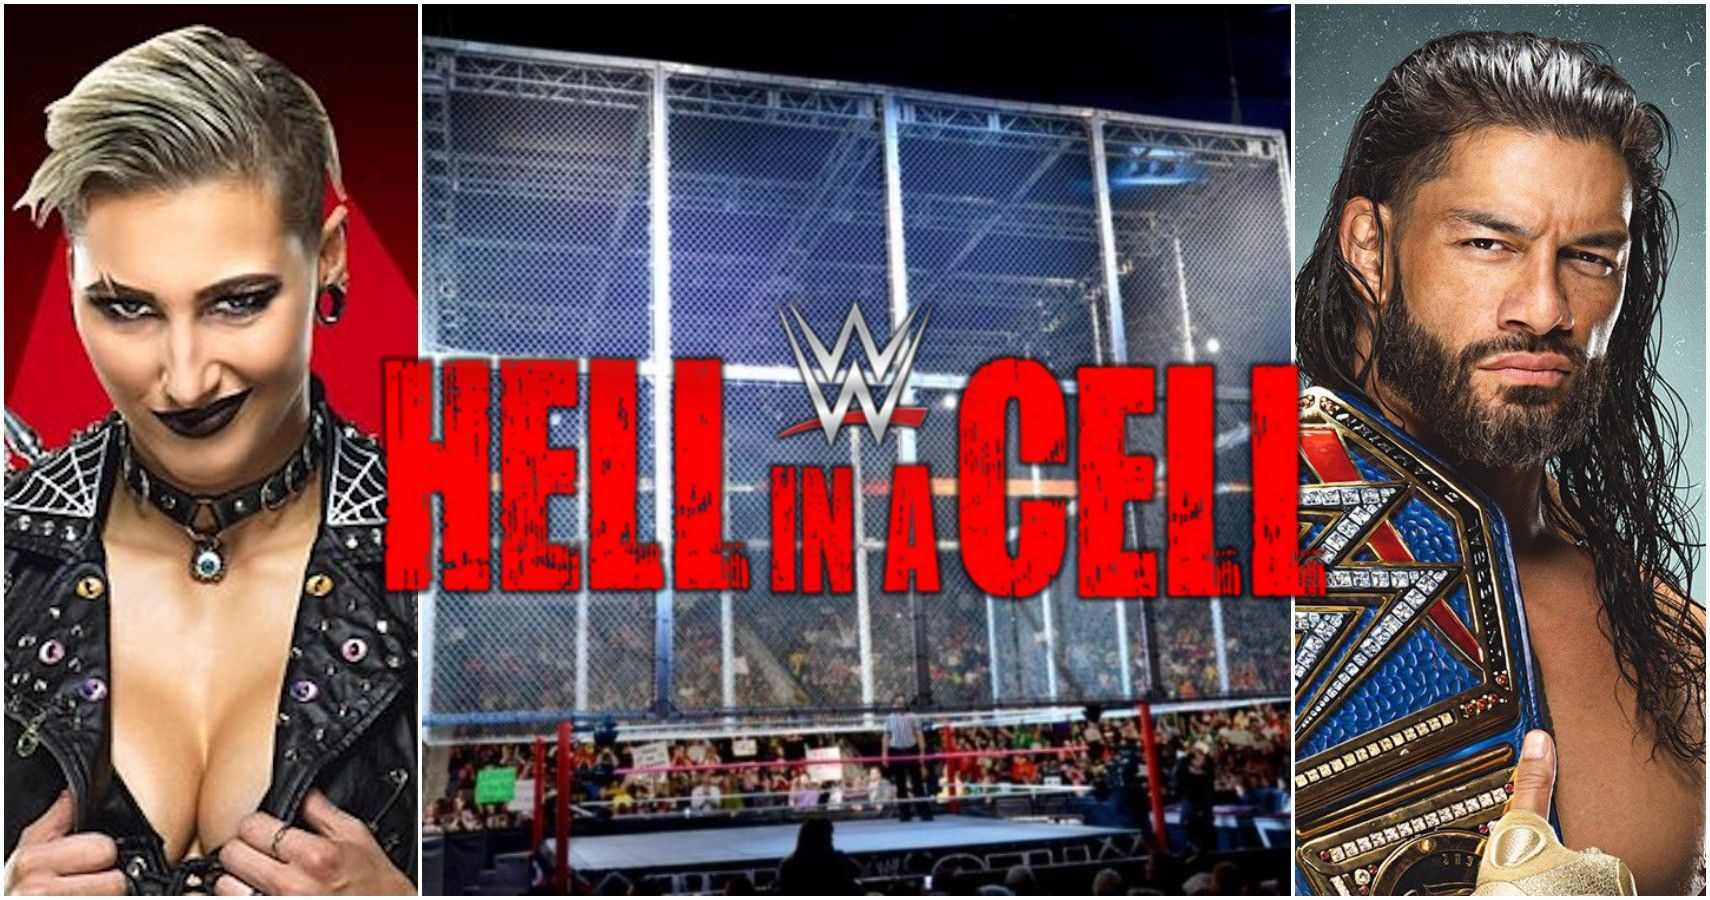 Wwe Hell In A Cell 2021 Ergebnisse